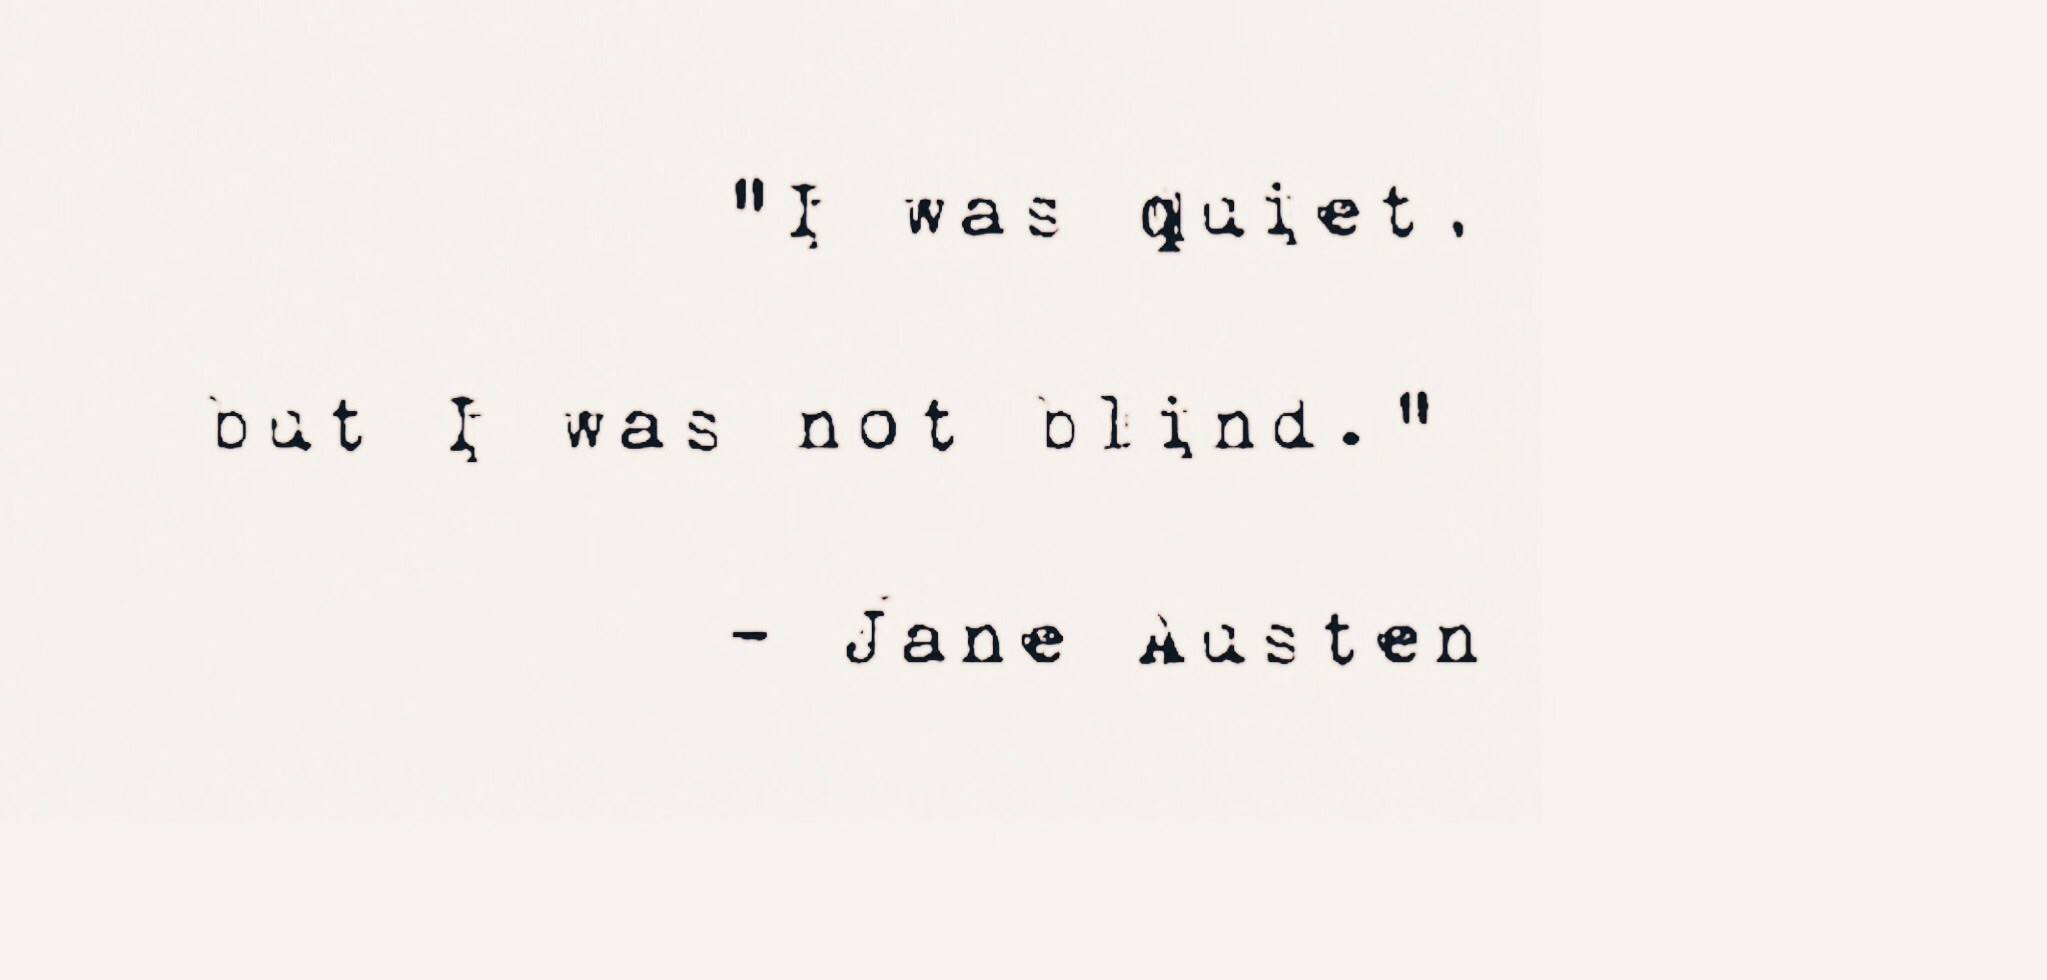 Quotes Jane Austen 25 Of Jane Austen's Most Famous Quotes  Artsheep